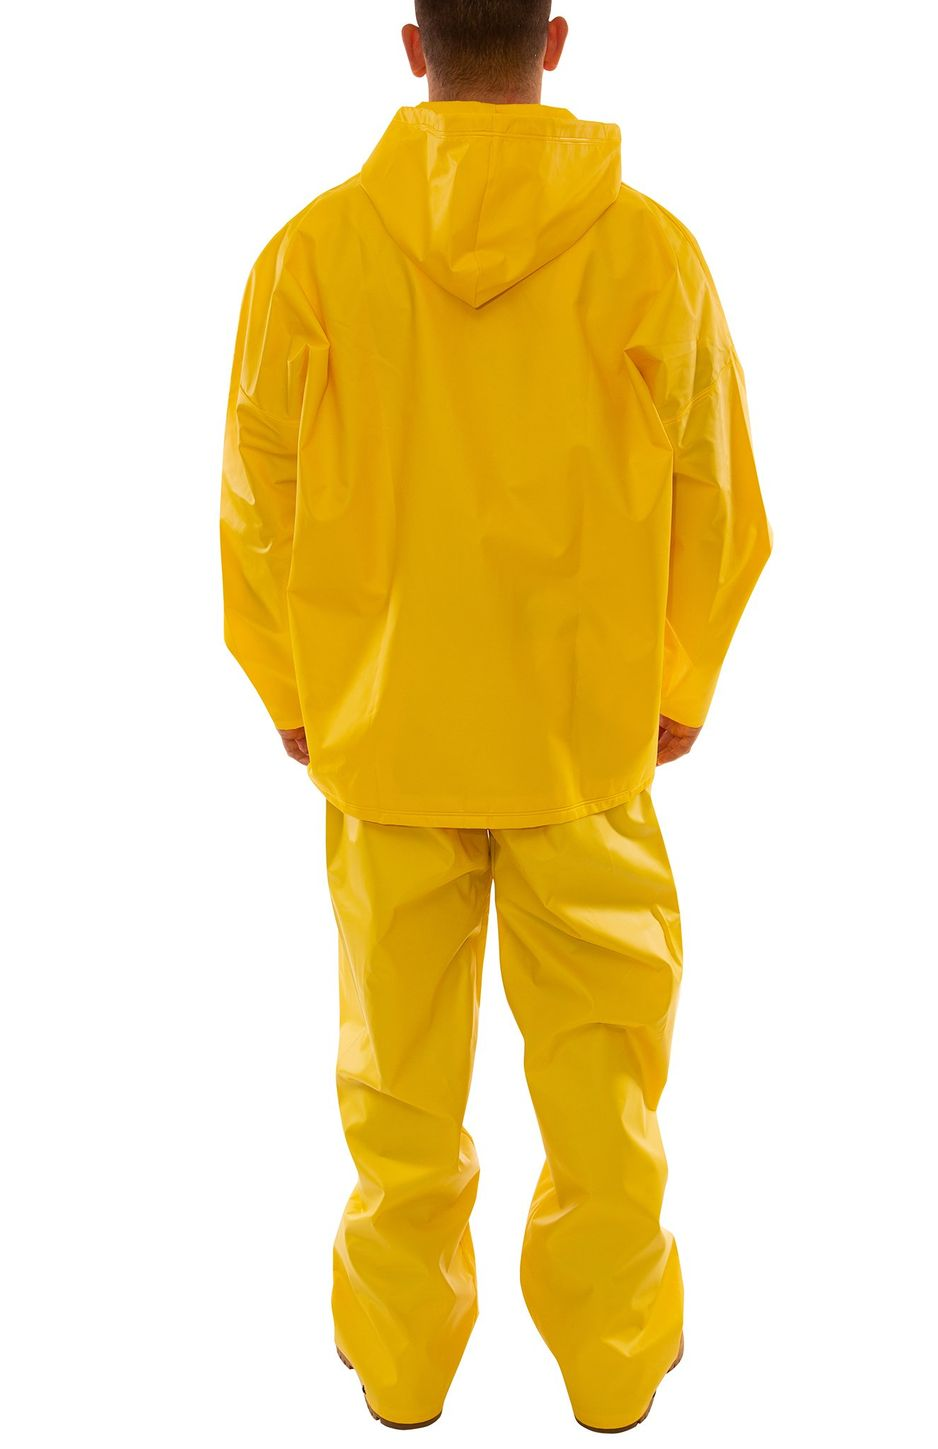 tingley-s56307-durascrim-fire-resistant-suit-3-piece-pvc-coated-chemical-resistant-with-detachable-hood-back.jpg